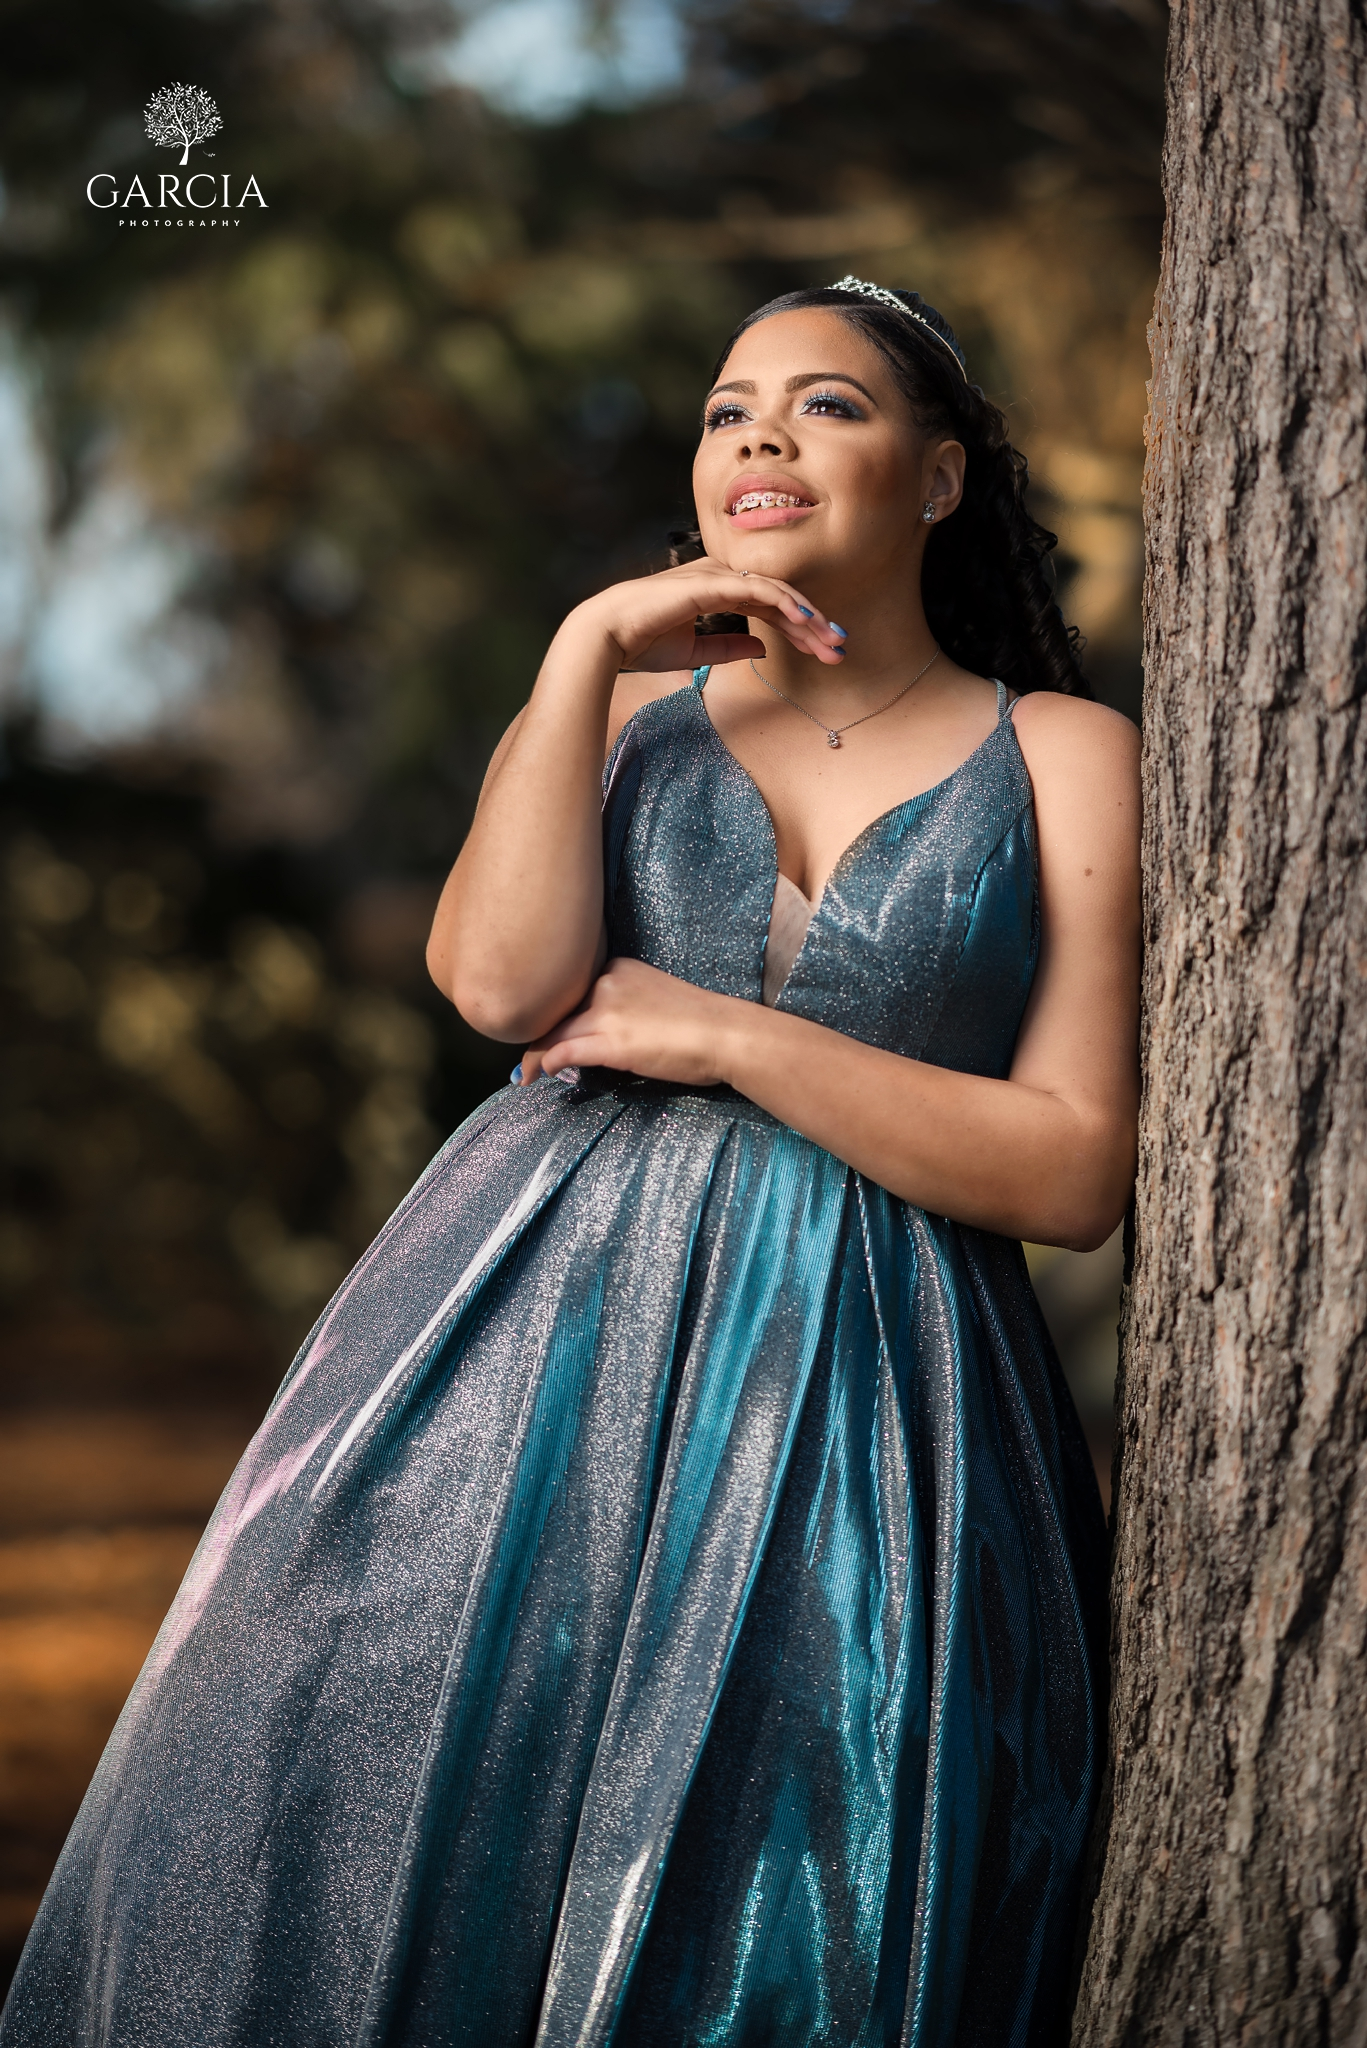 Andrea-Quince-Sesion-Garcia-Photography-7656.jpg